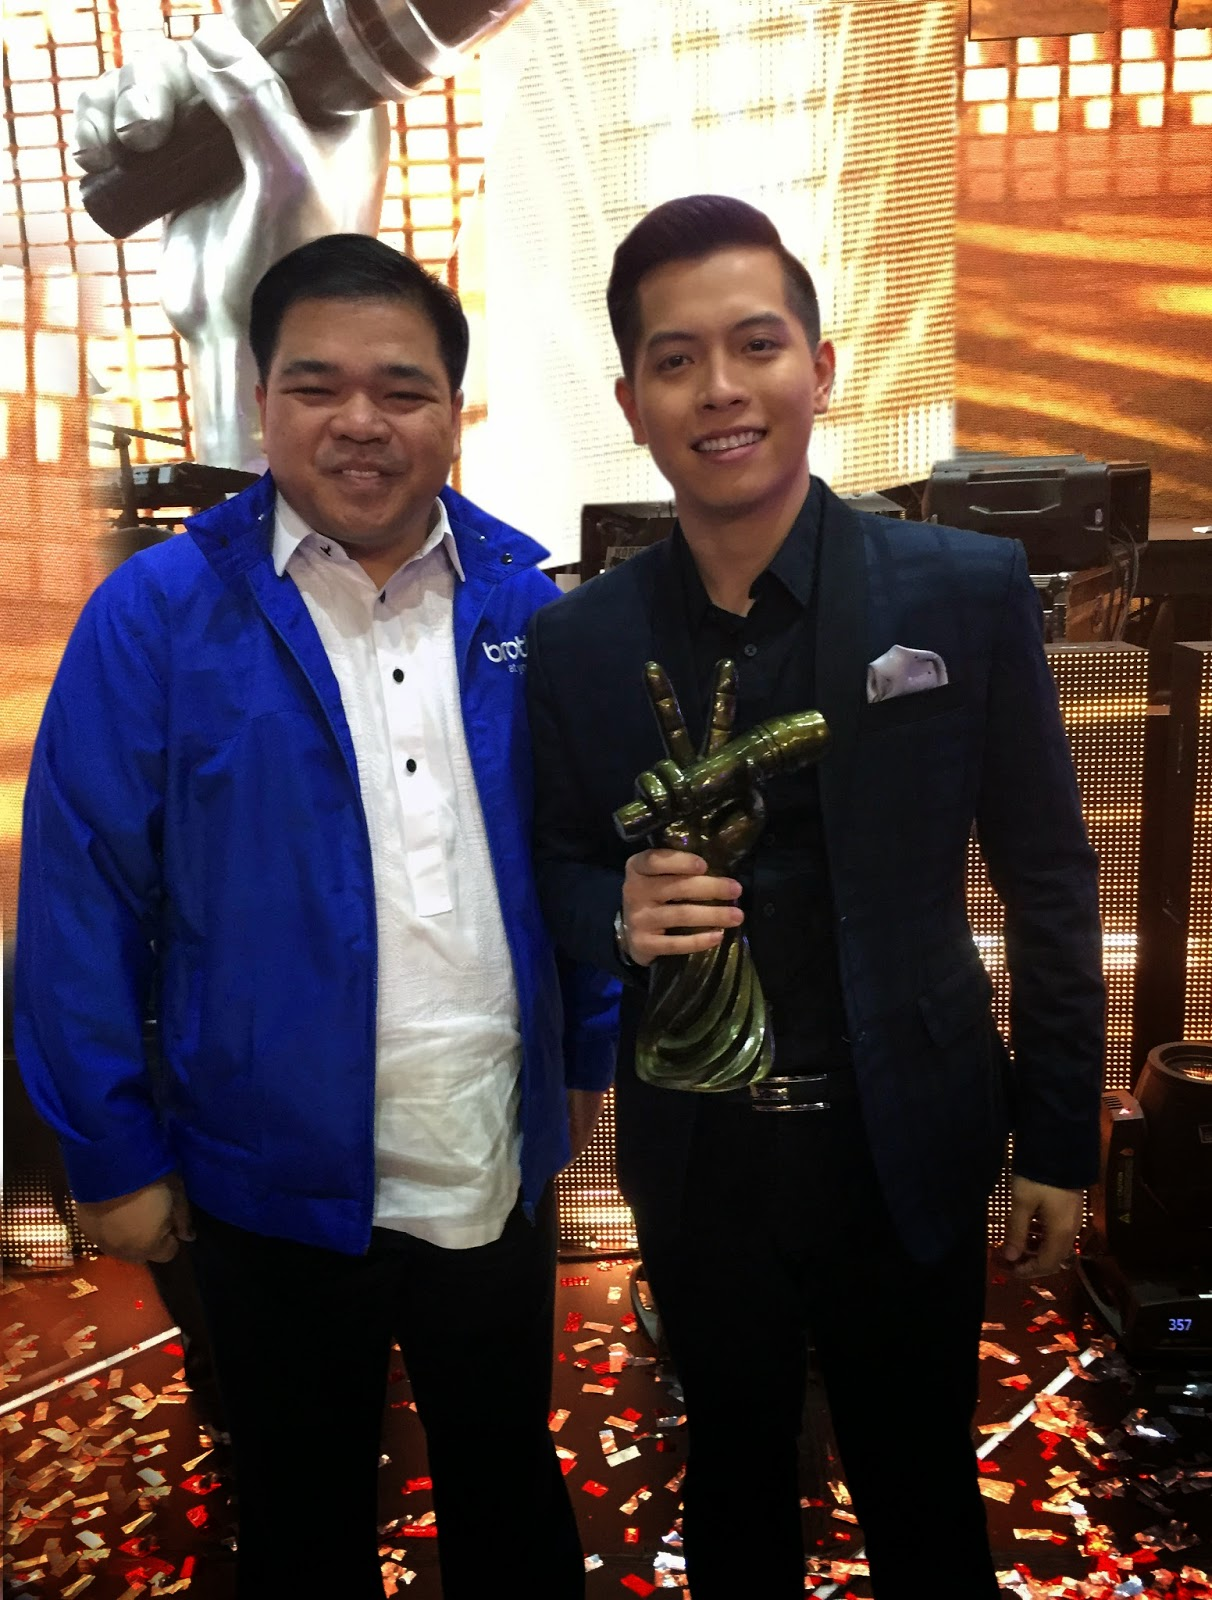 Glenn Hocson and Jason Dy